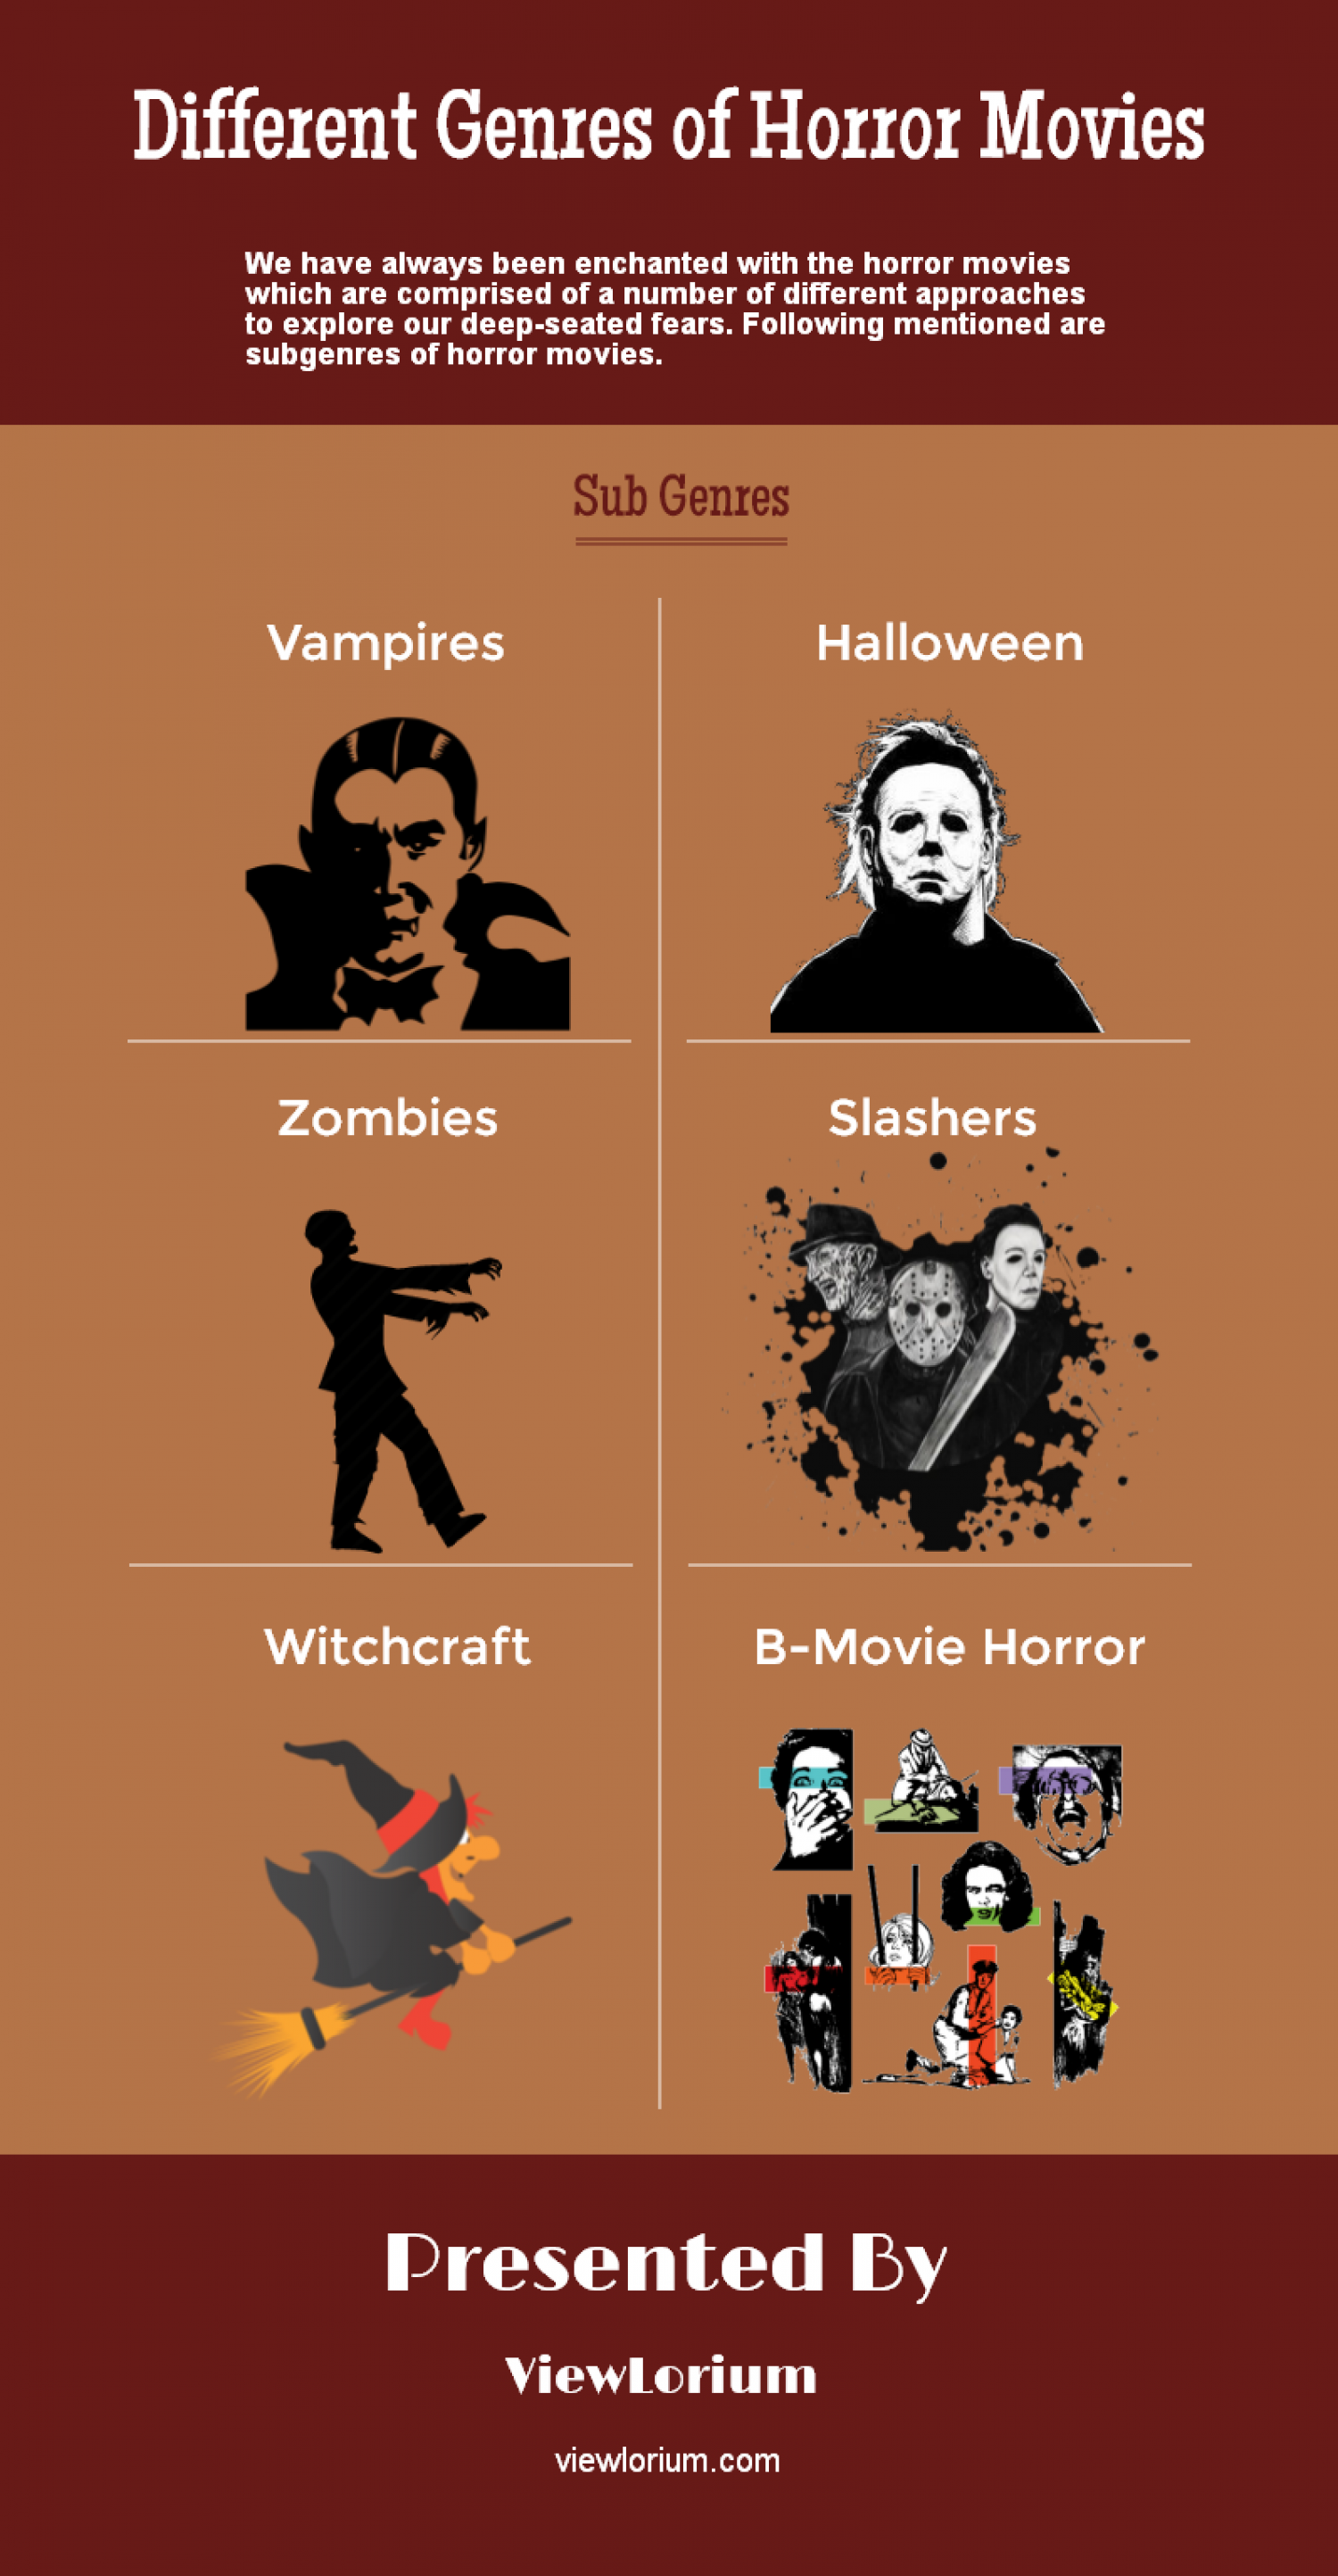 horror movie genre essay Van helsing has many genres, action / adventure / horror / fantasy / thriller horror is included but it isn't necessary the main genre the first big main horror film company was hammer house of horror that first made such classics as dracula, the curse of frankenstein and the mummy.